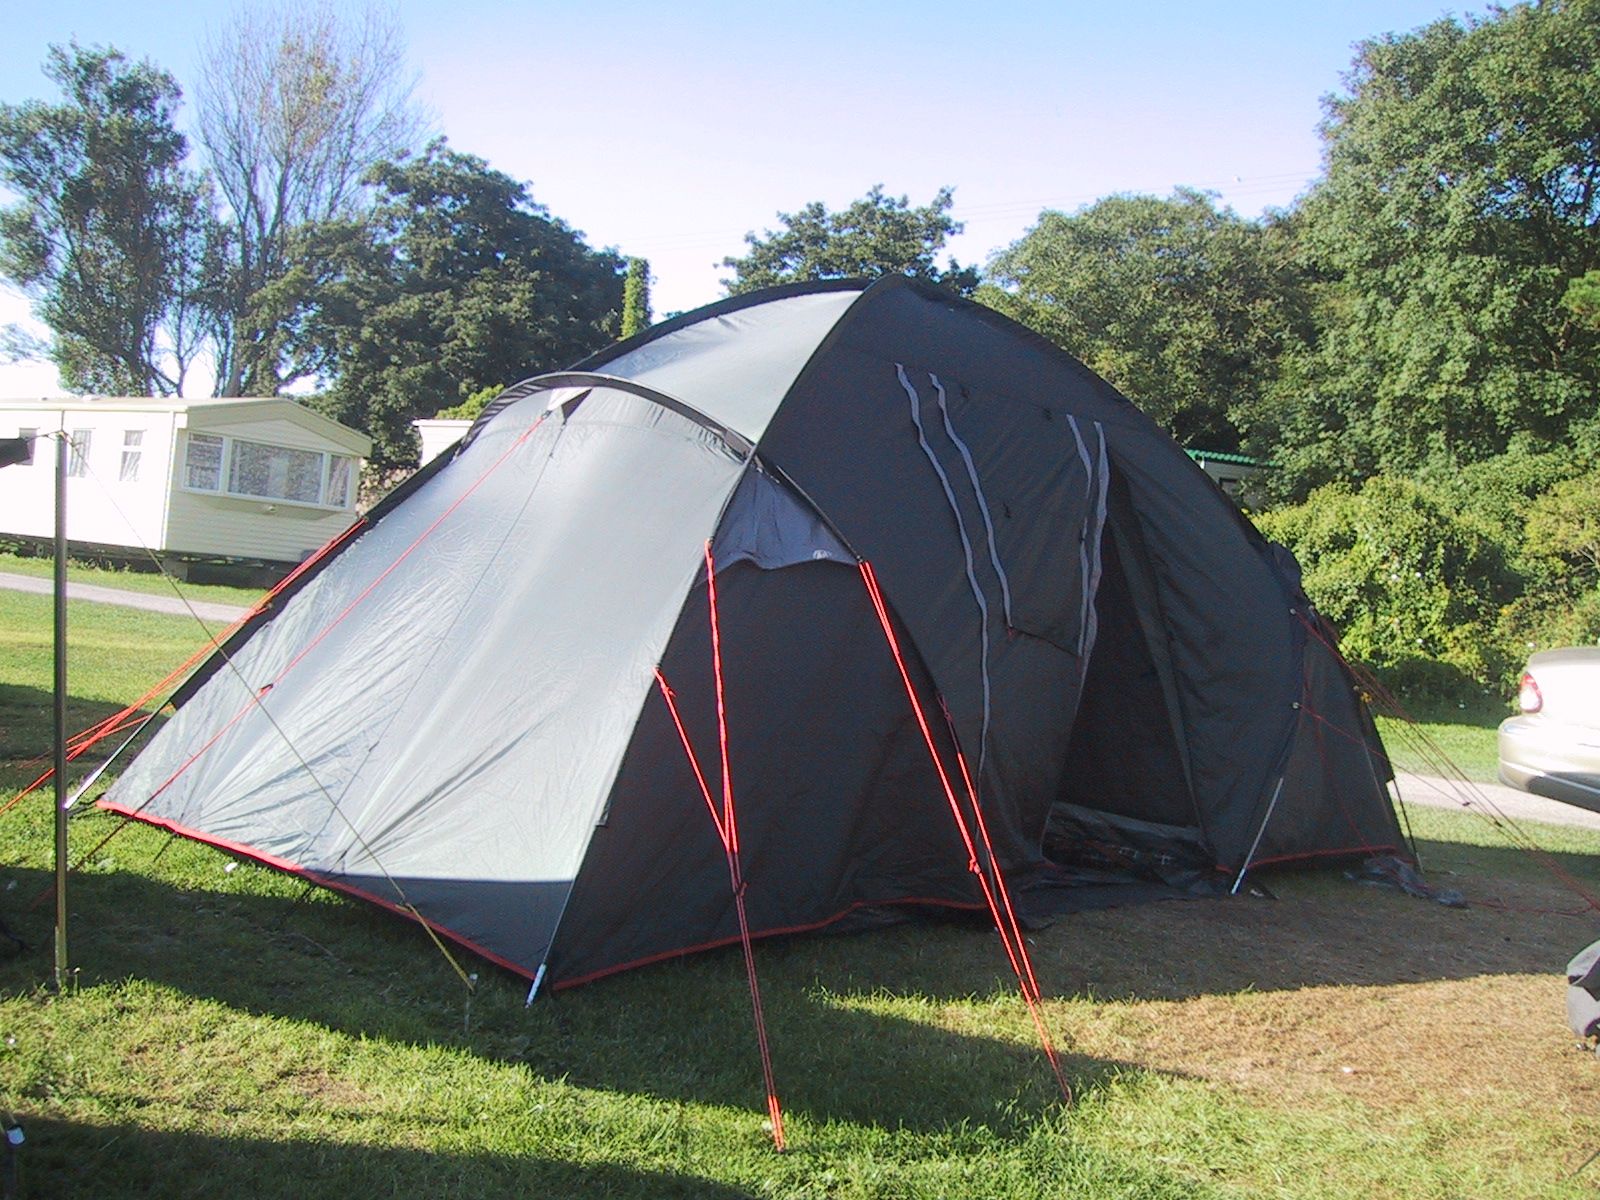 File:Dome tent.JPG